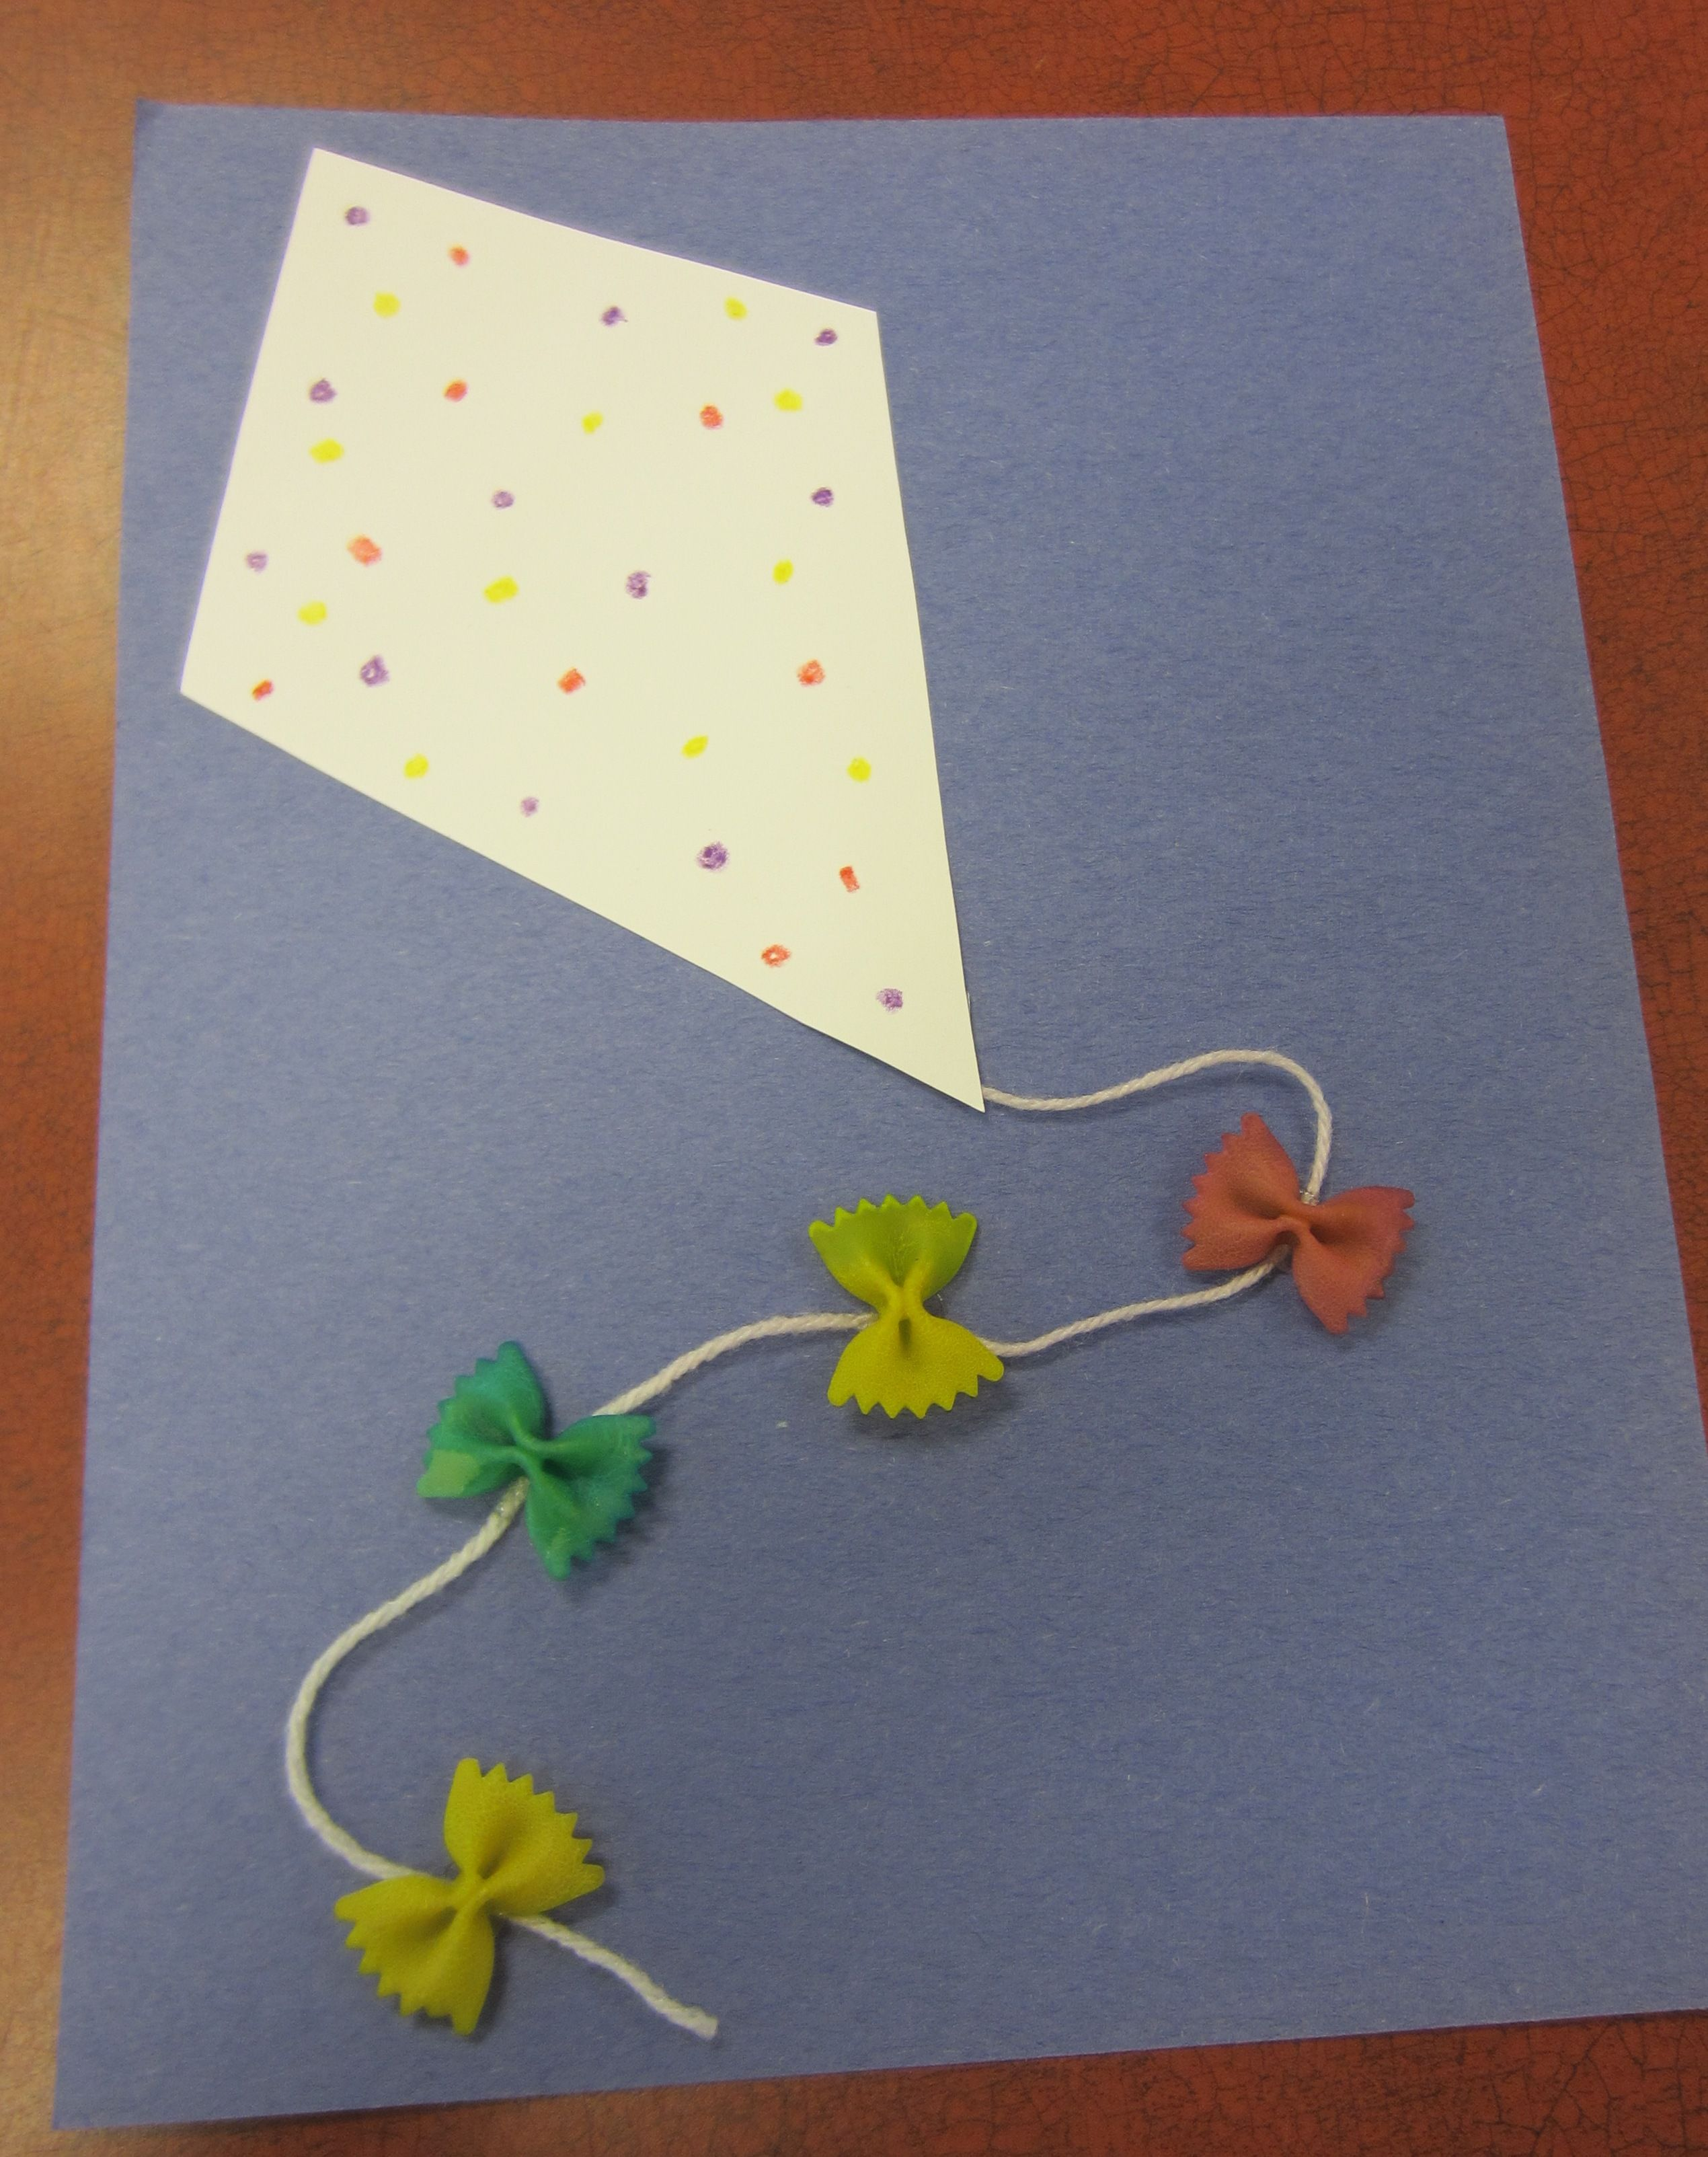 Simple Kite Craft Card Stock Construction Paper Markers Yarn And Dyed Bow Tie Pasta